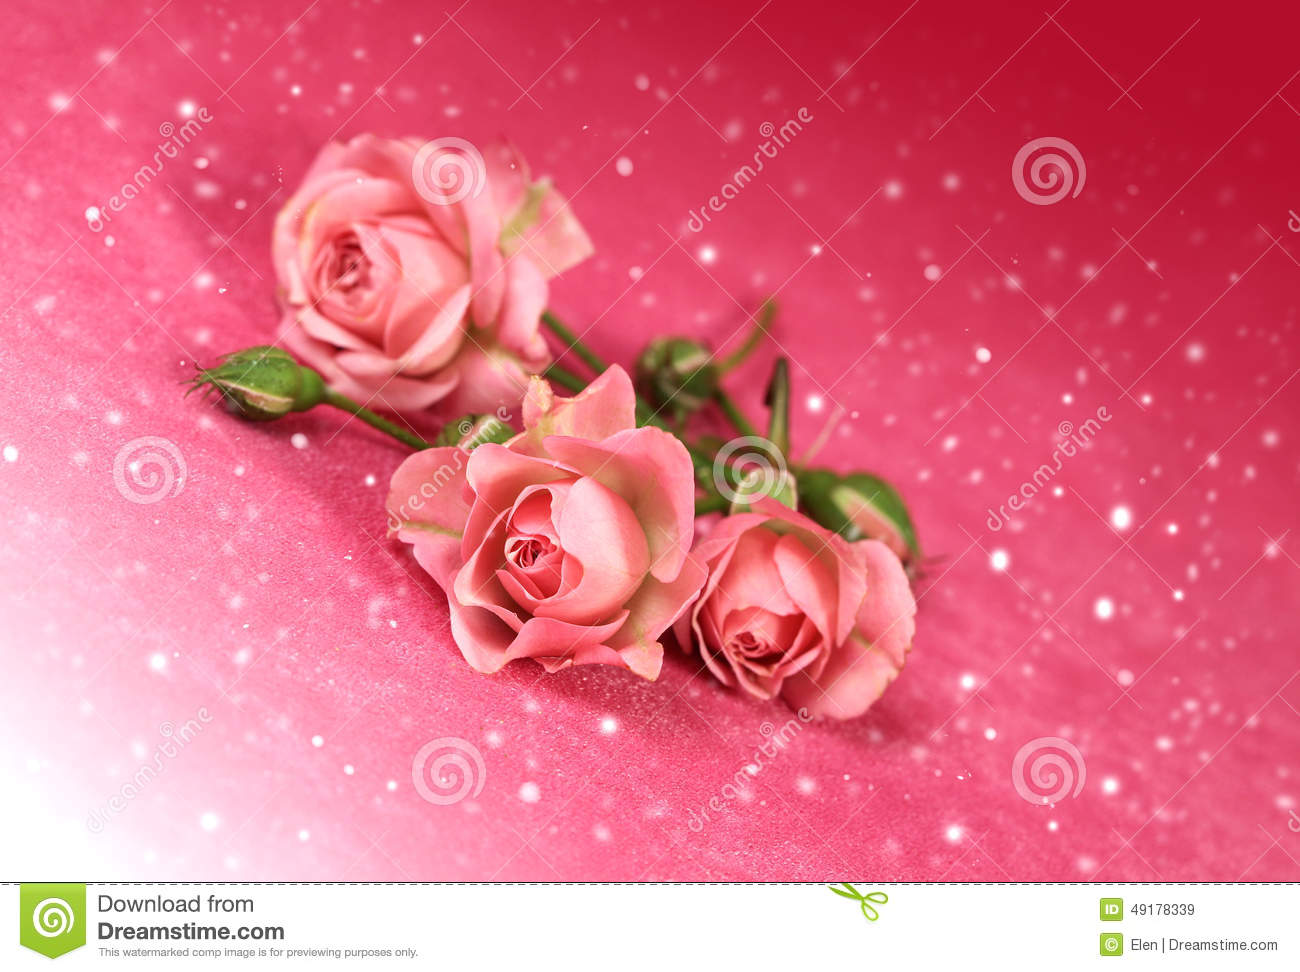 Beautiful flowers roses with snow stock image image of picture beautiful flowers roses with snow izmirmasajfo Images